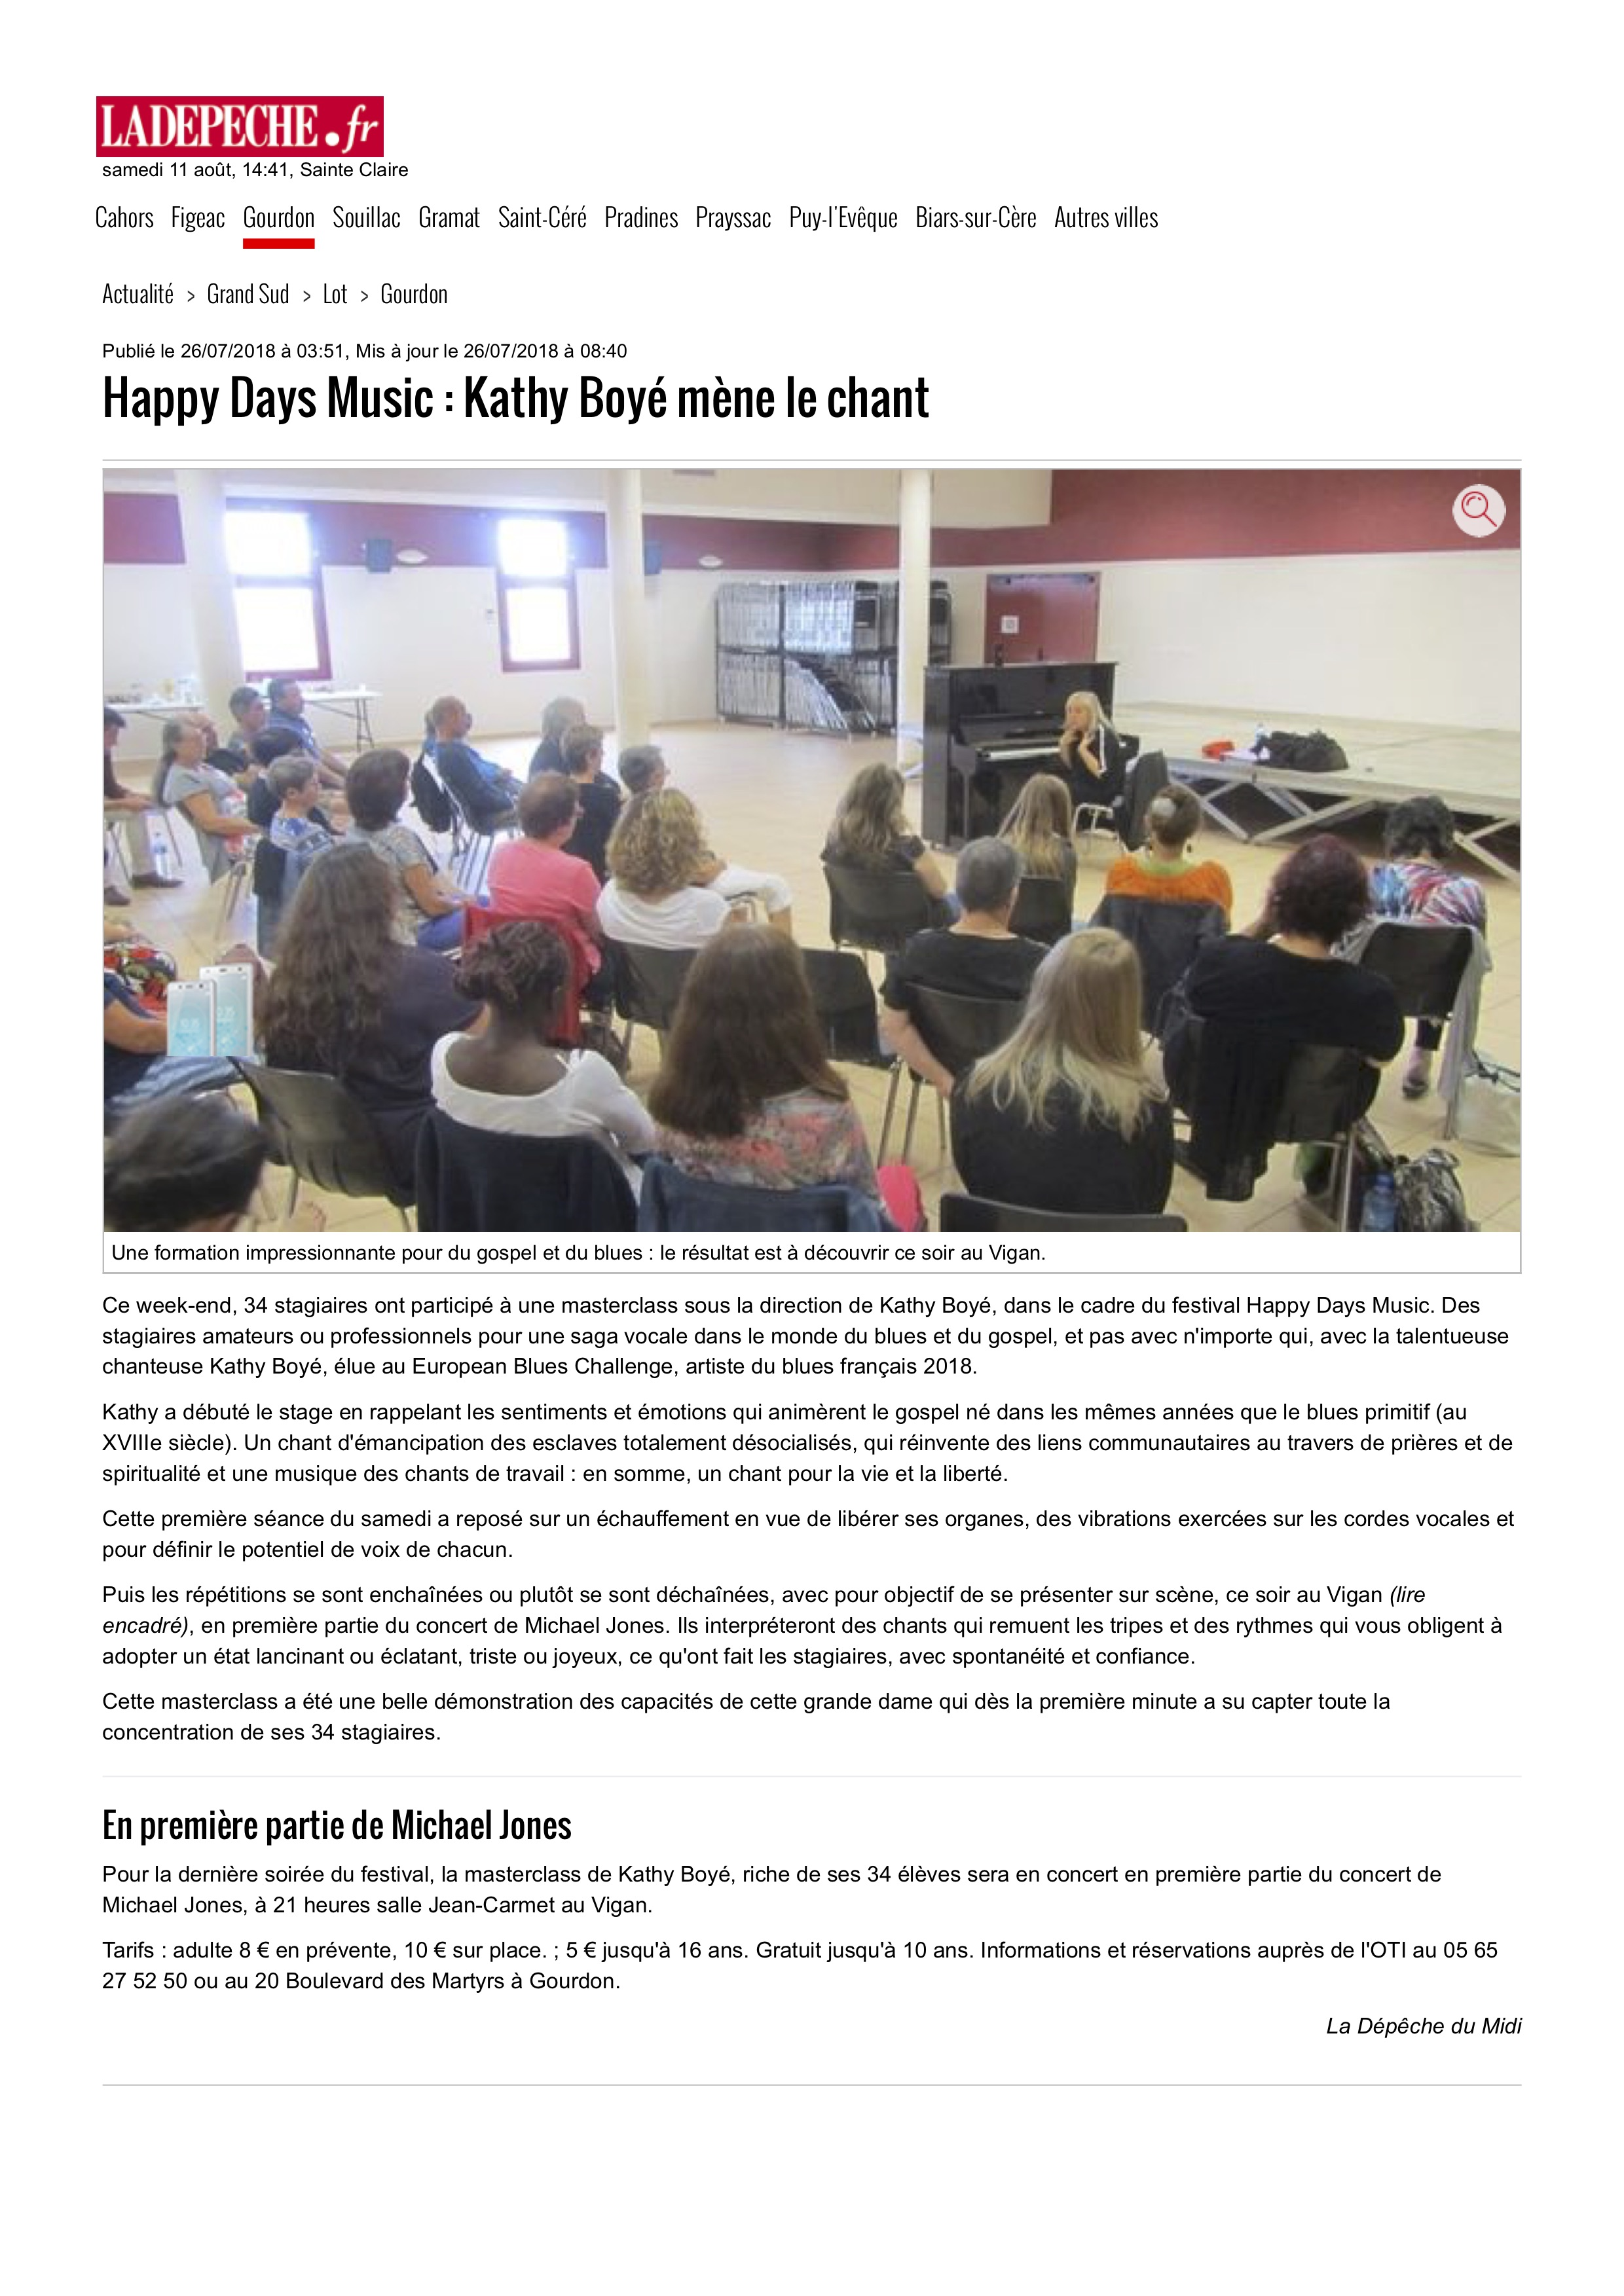 https://www.ladepeche.fr/article/2018/07/26/2841692-happy-days-music-kathy-boye-mene-le-chant.html#